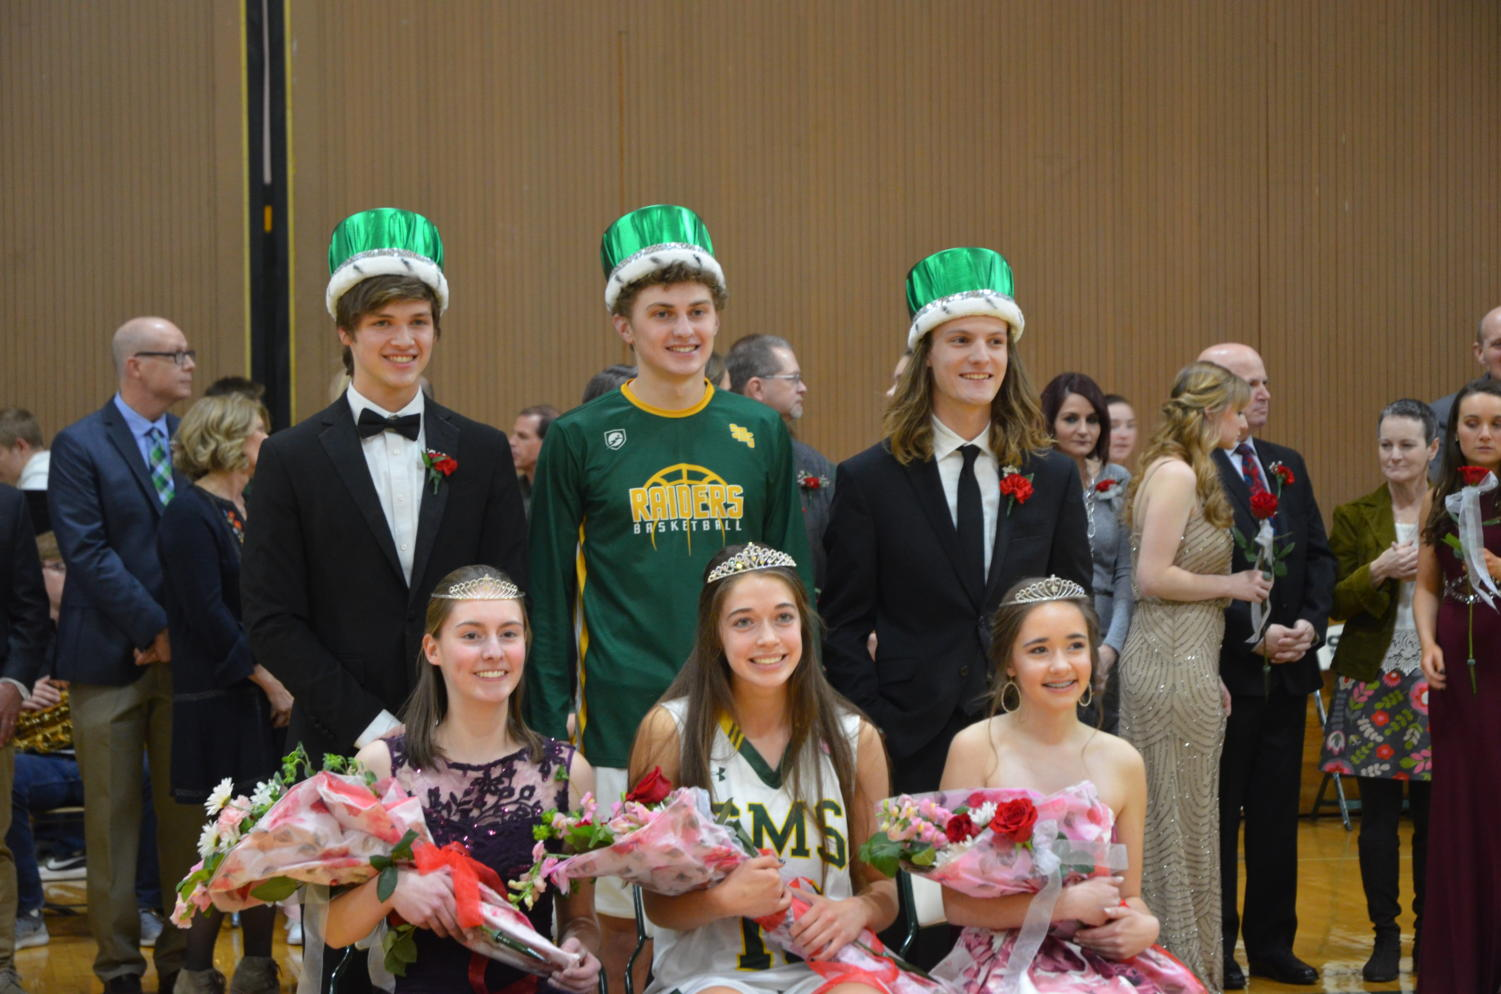 Sweetheart candidates Kailey Hance, Karoline Shelton, Madison Holloway,  Patrick Sturm, Nick Wissel and Mason Zeller